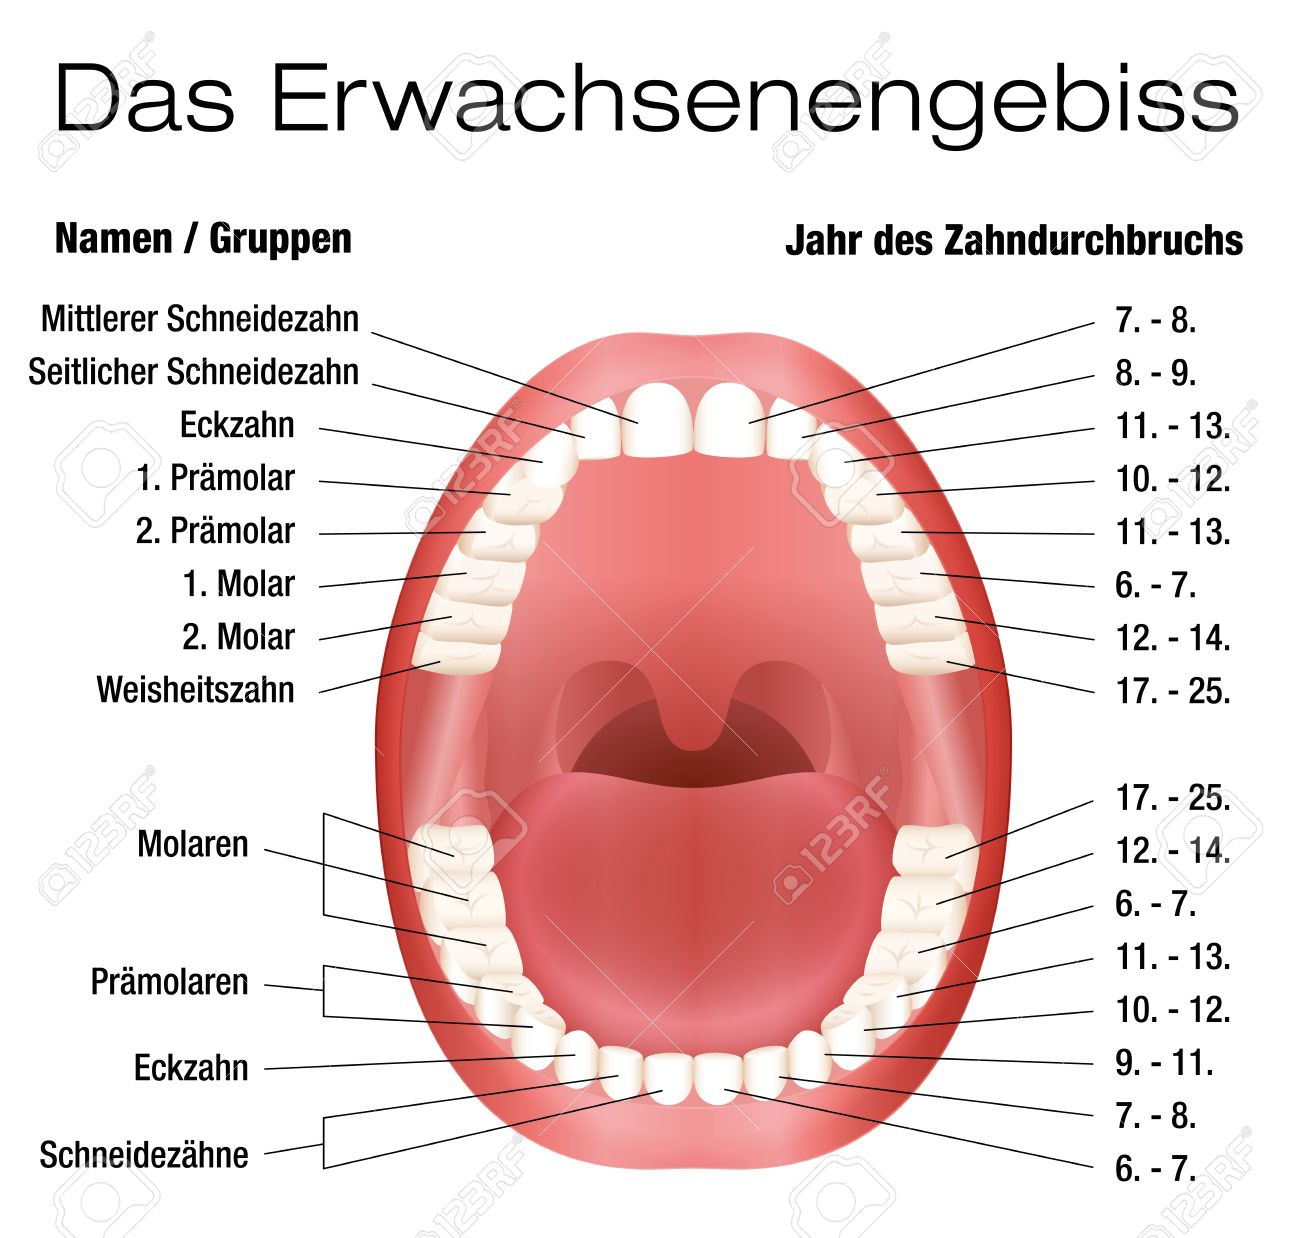 Teeth Names And Permanent Teeth Eruption Chart With Accurate ...